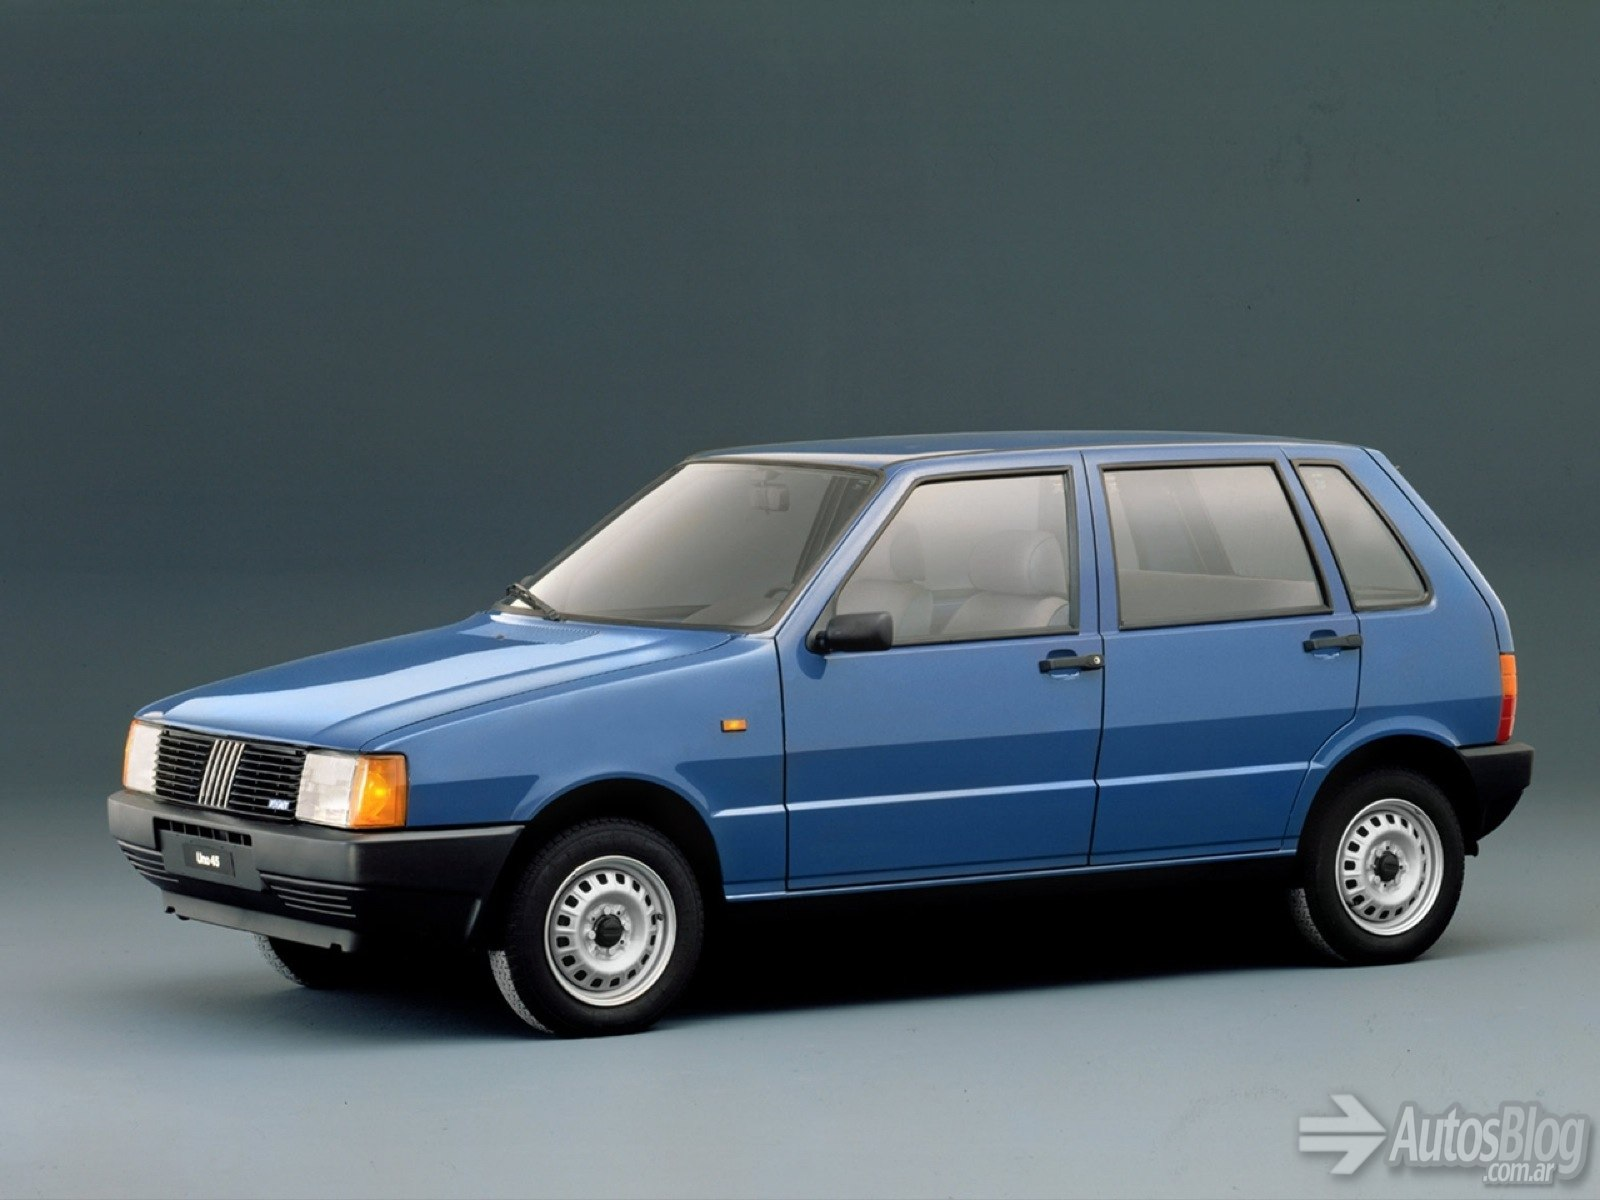 1984 Fiat Uno Photos Informations Articles Manual Free Download 11